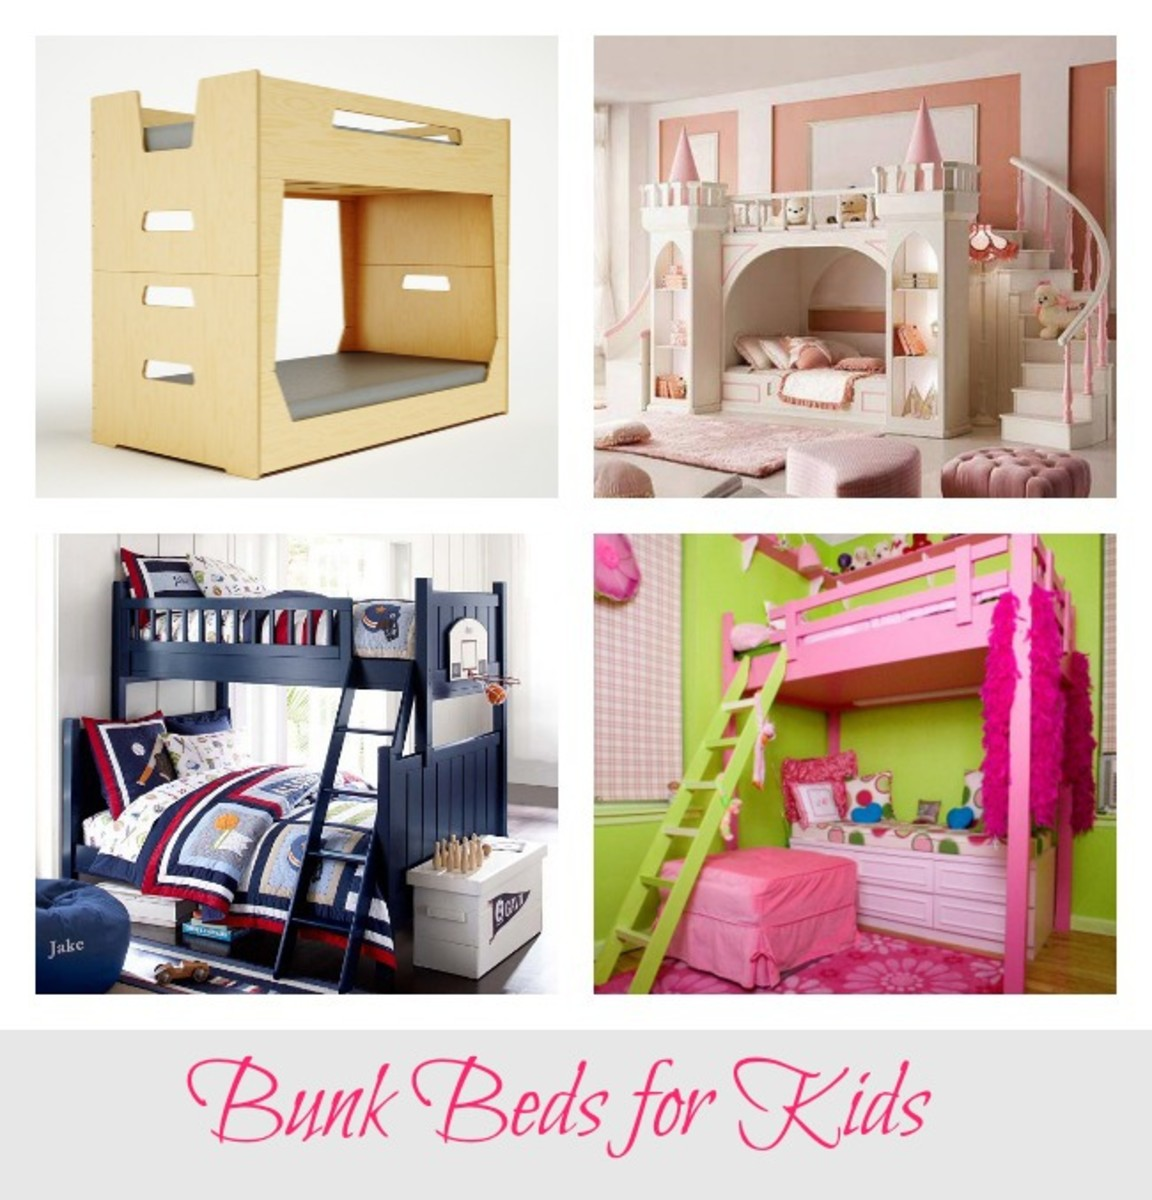 Favorite Bunk Beds for Kids MomTrendsMomTrends